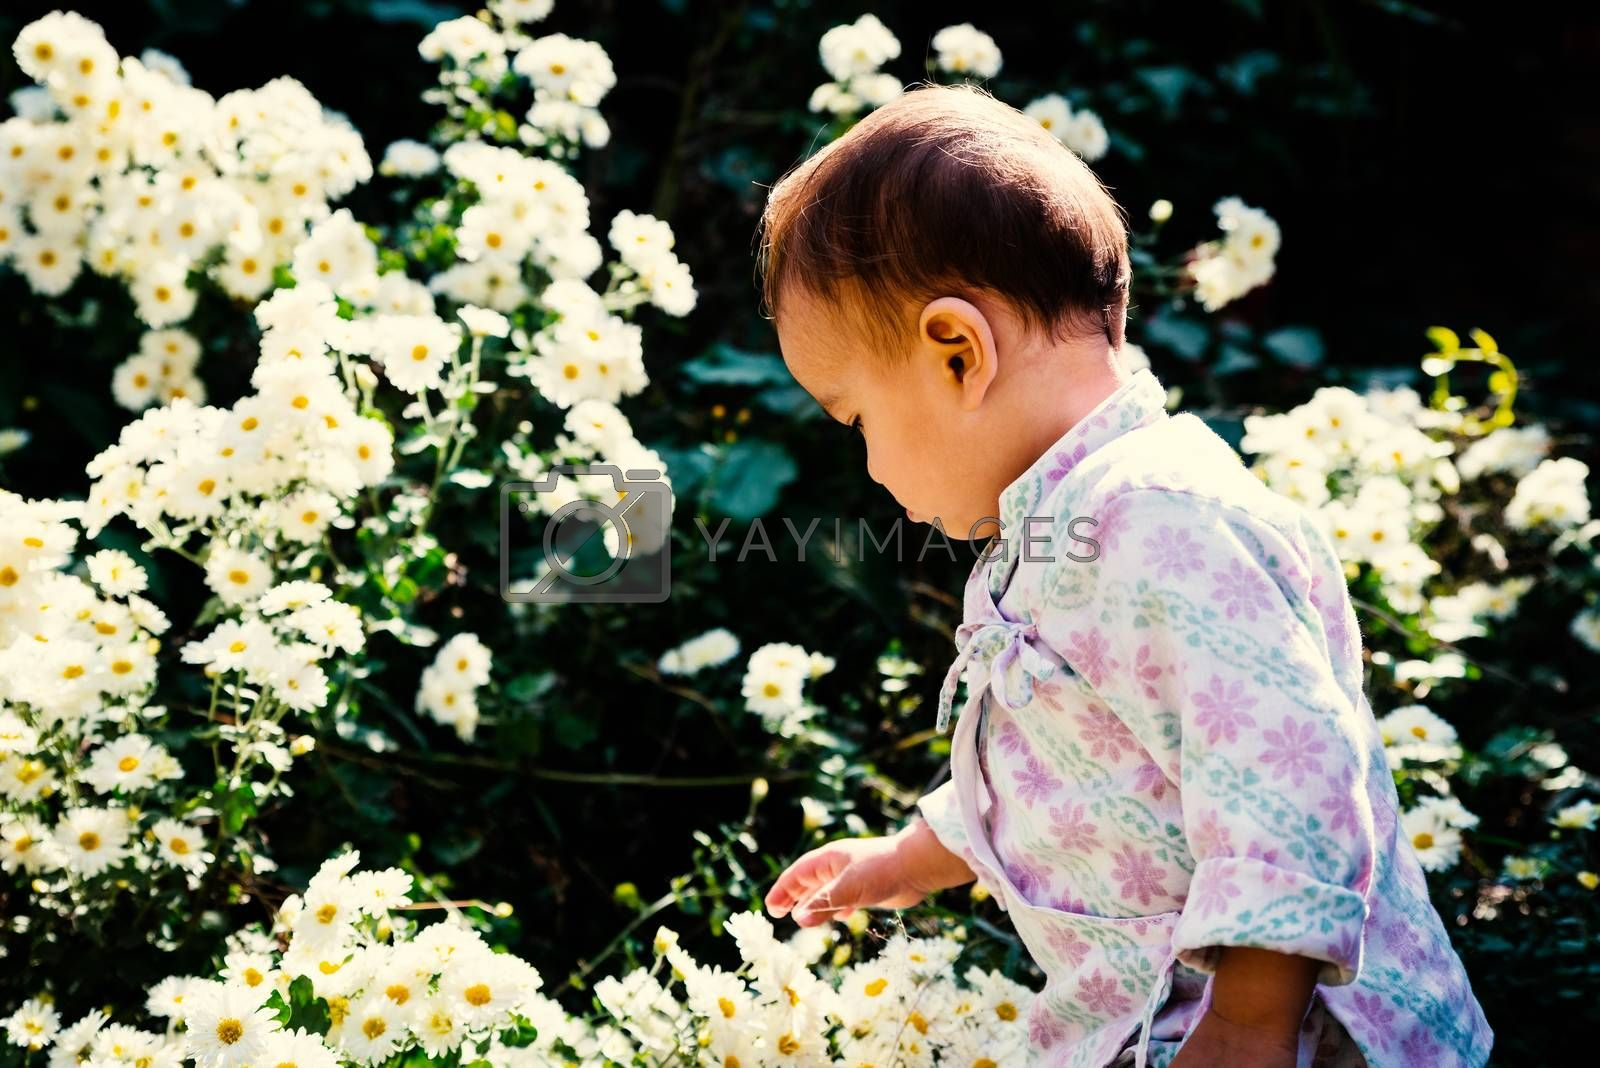 Royalty free image of Baby playing with white flowers in garden by dutourdumonde